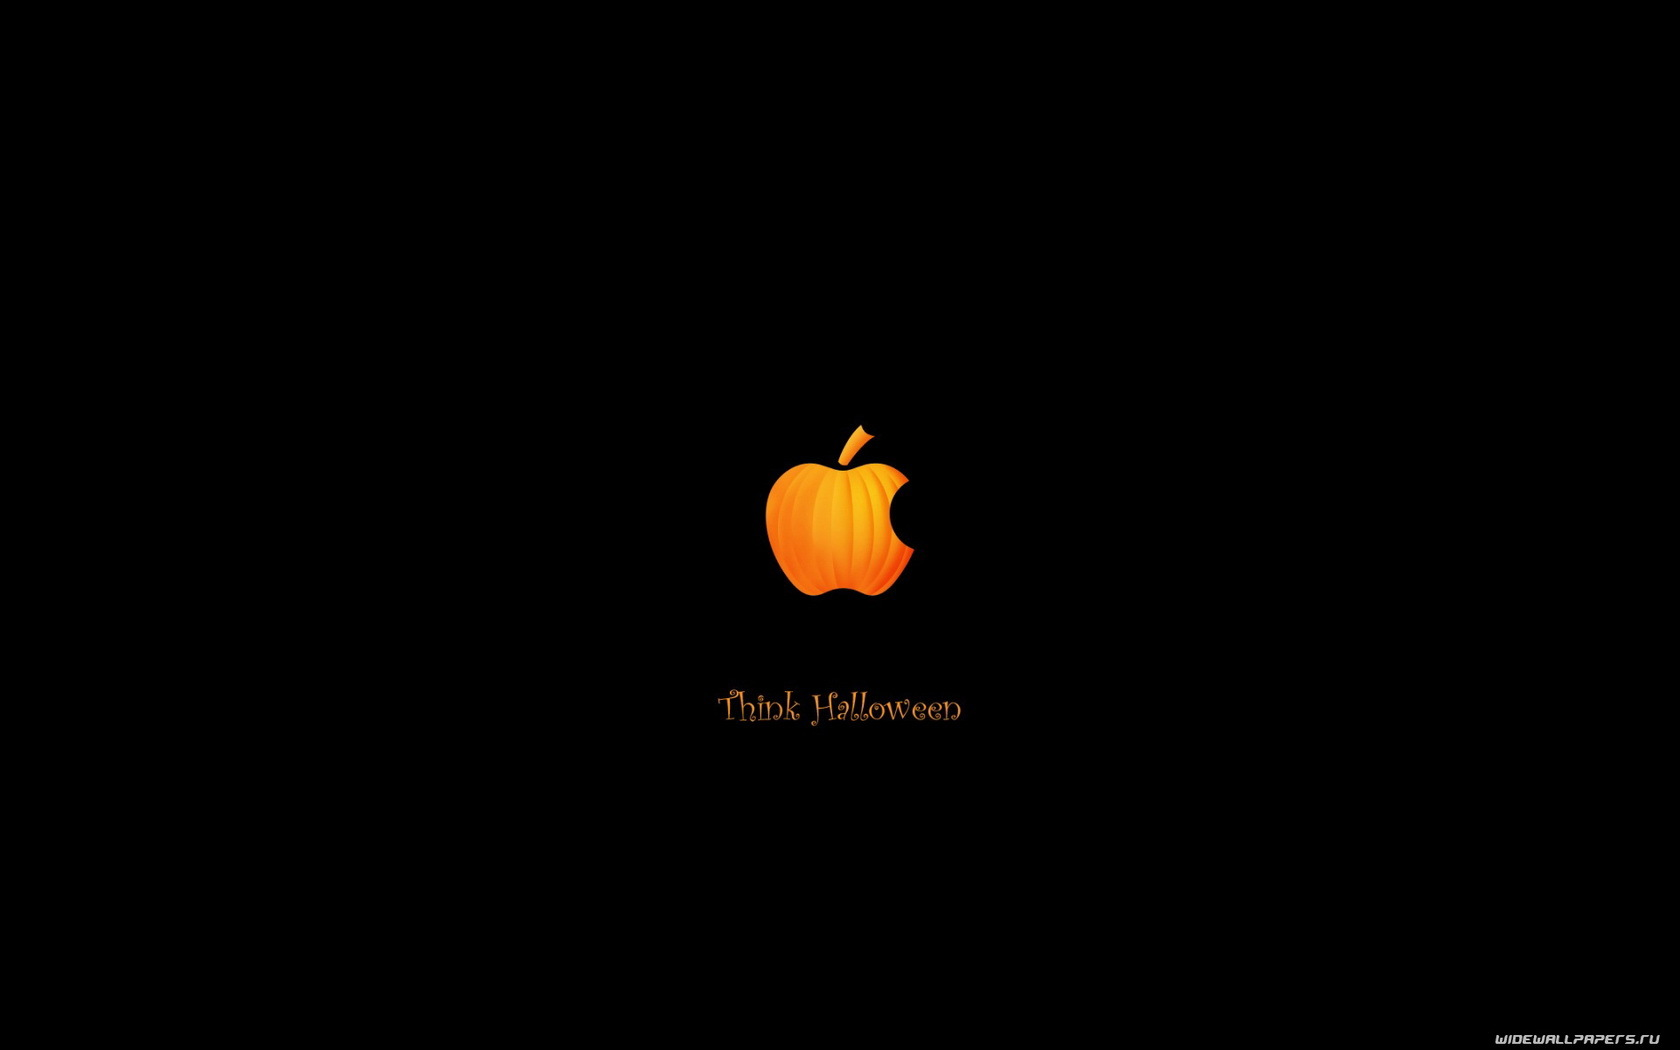 64 download wallpaper Funny, Holidays, Brands, Logos, Apple, Halloween screensavers and pictures for free